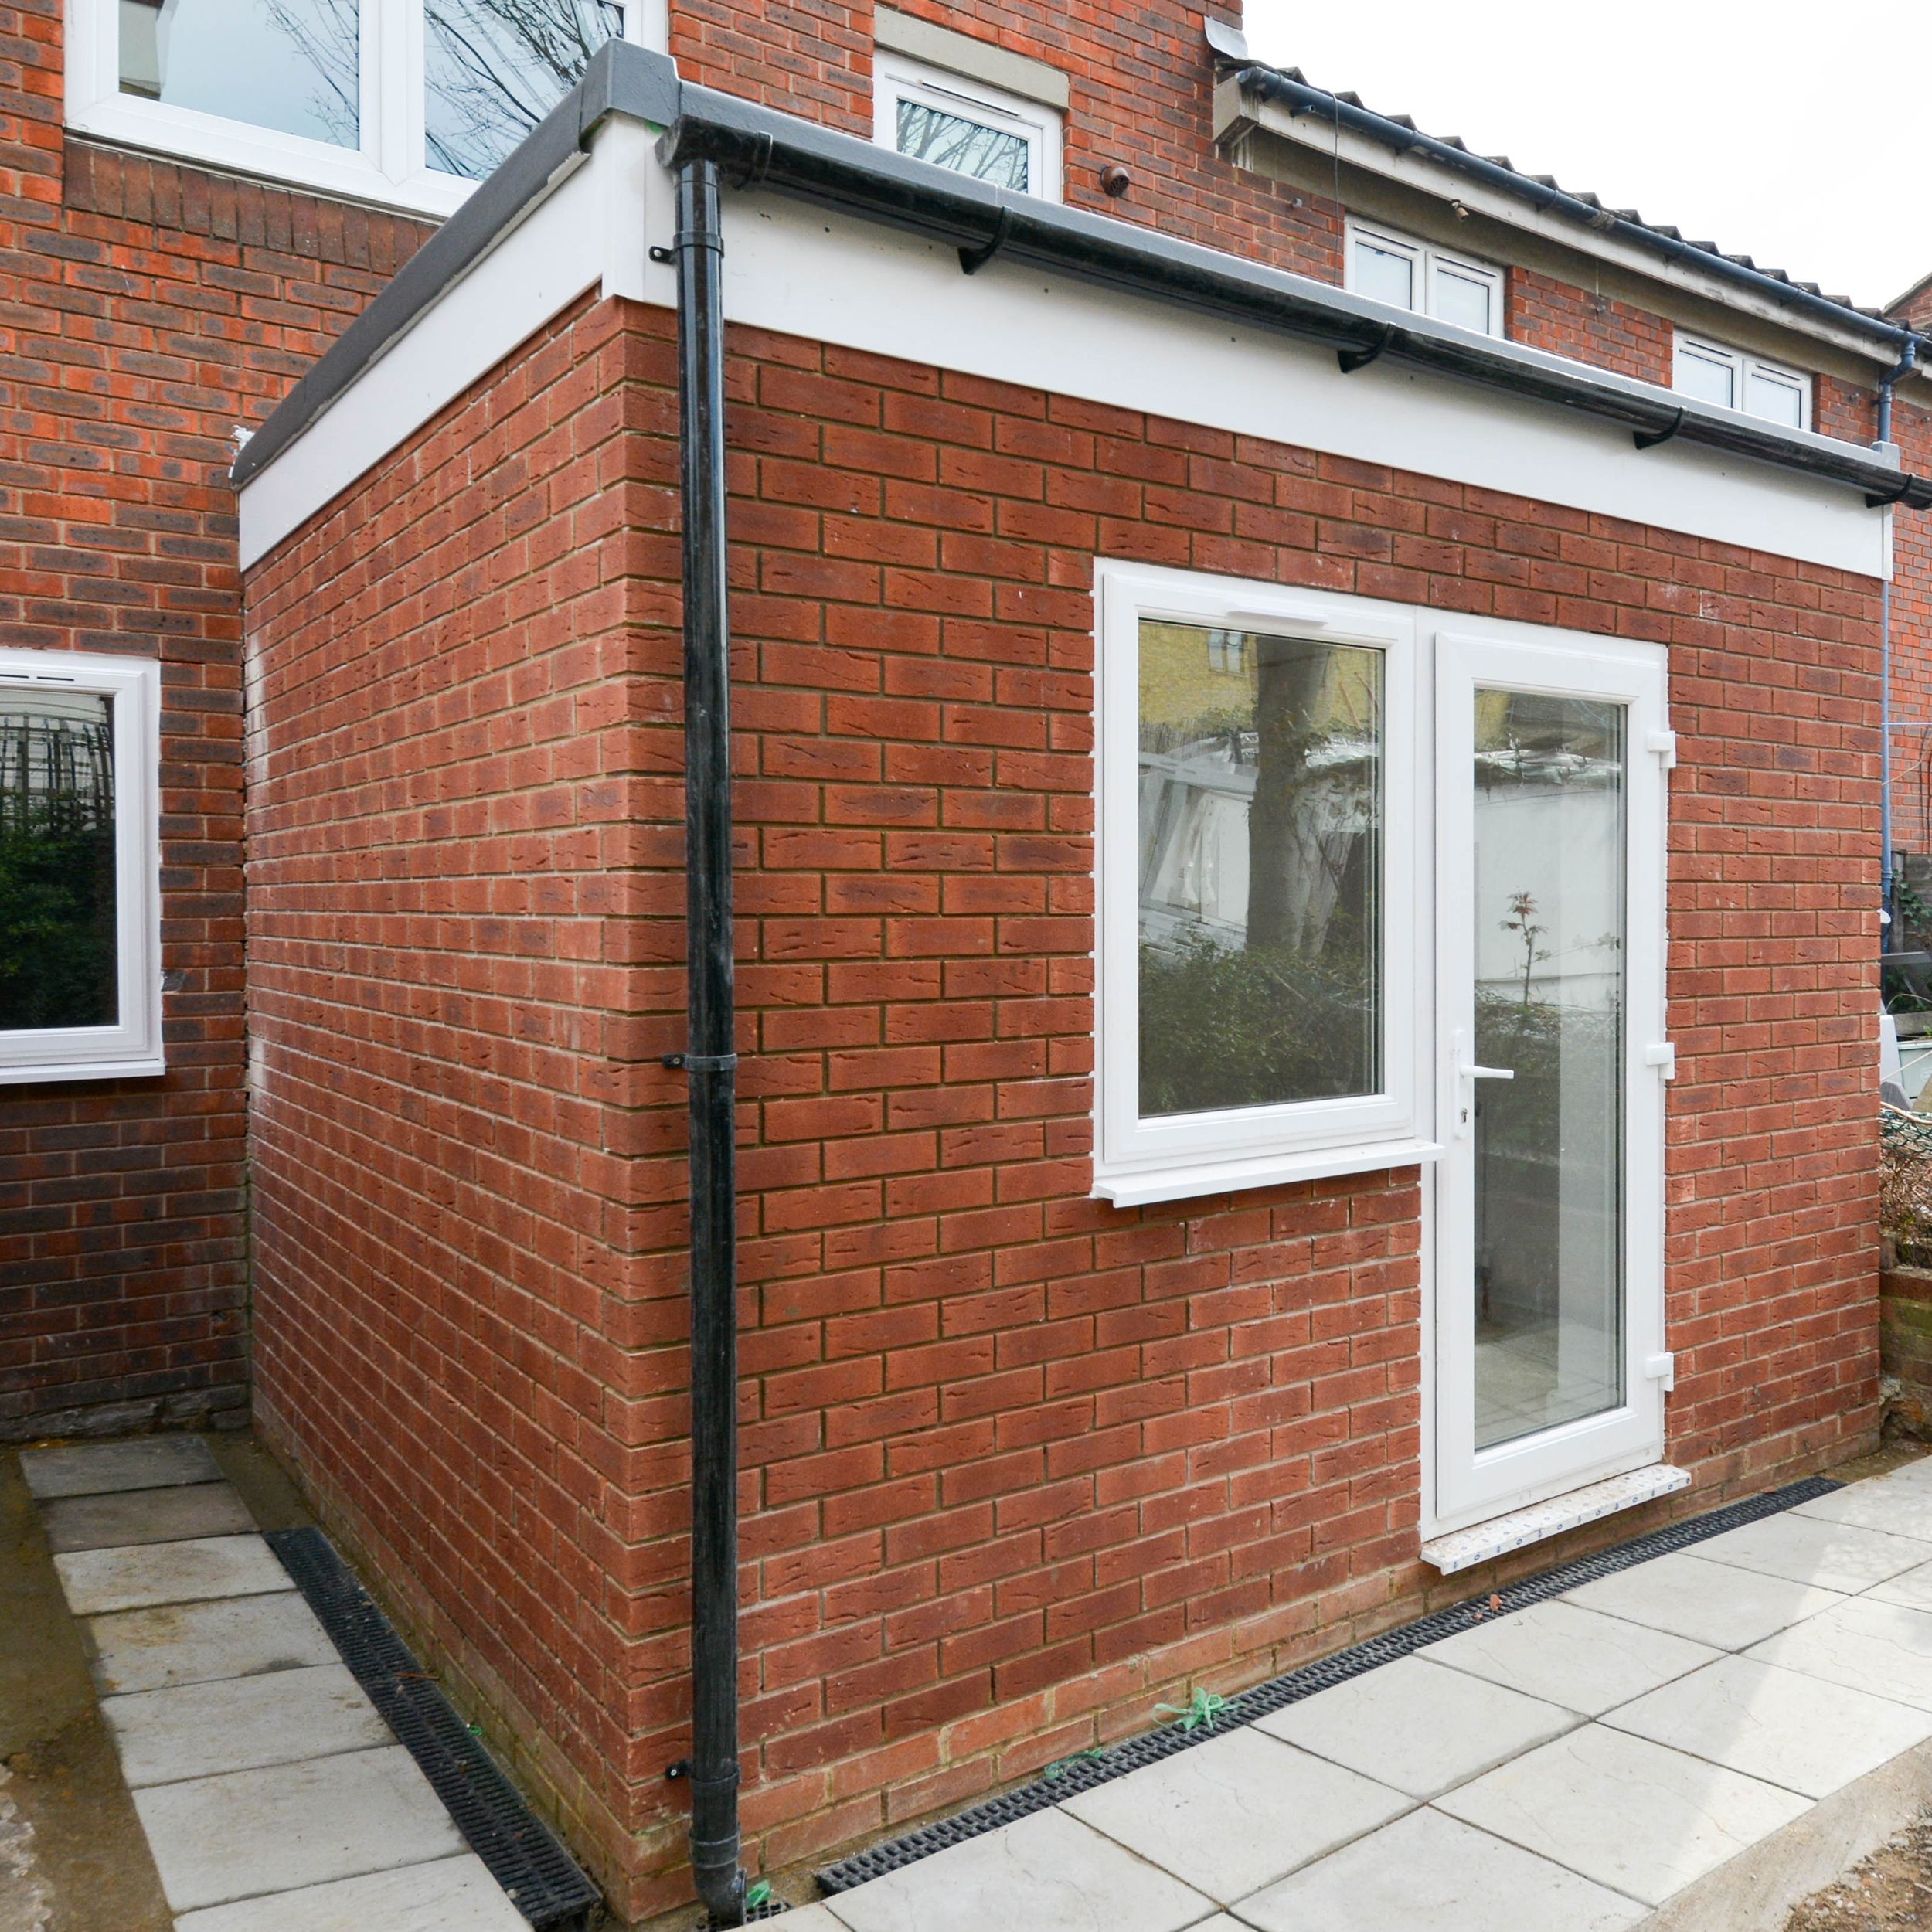 Residential housing property with a bespoke extension